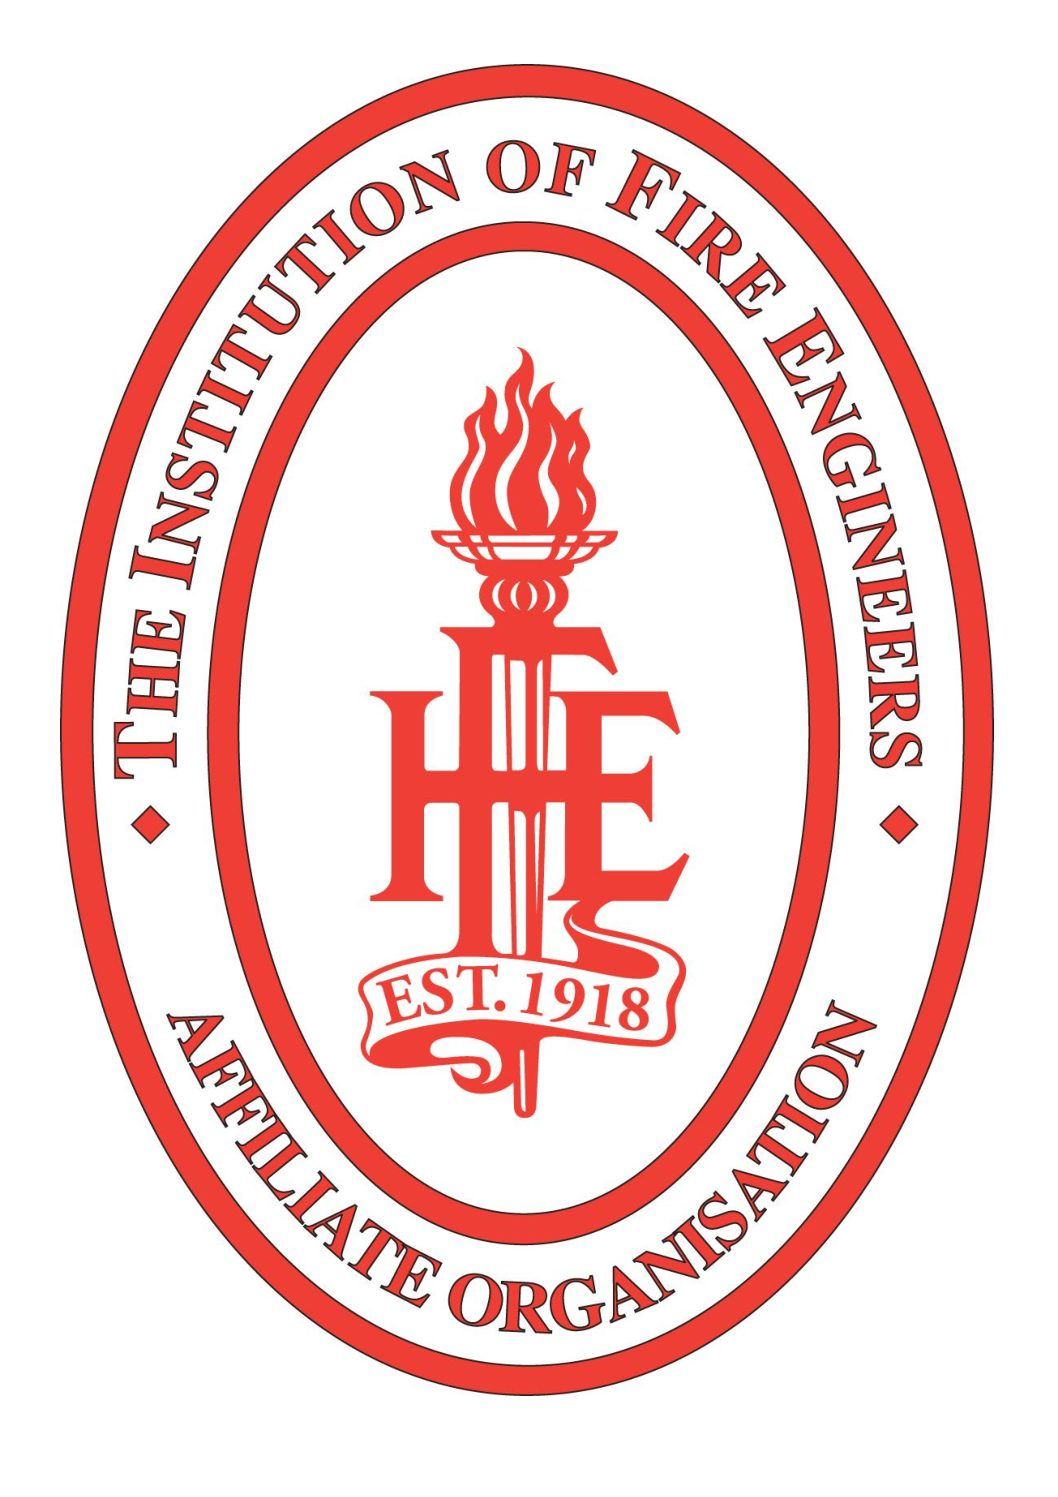 The Institute of Fire Engineers logo